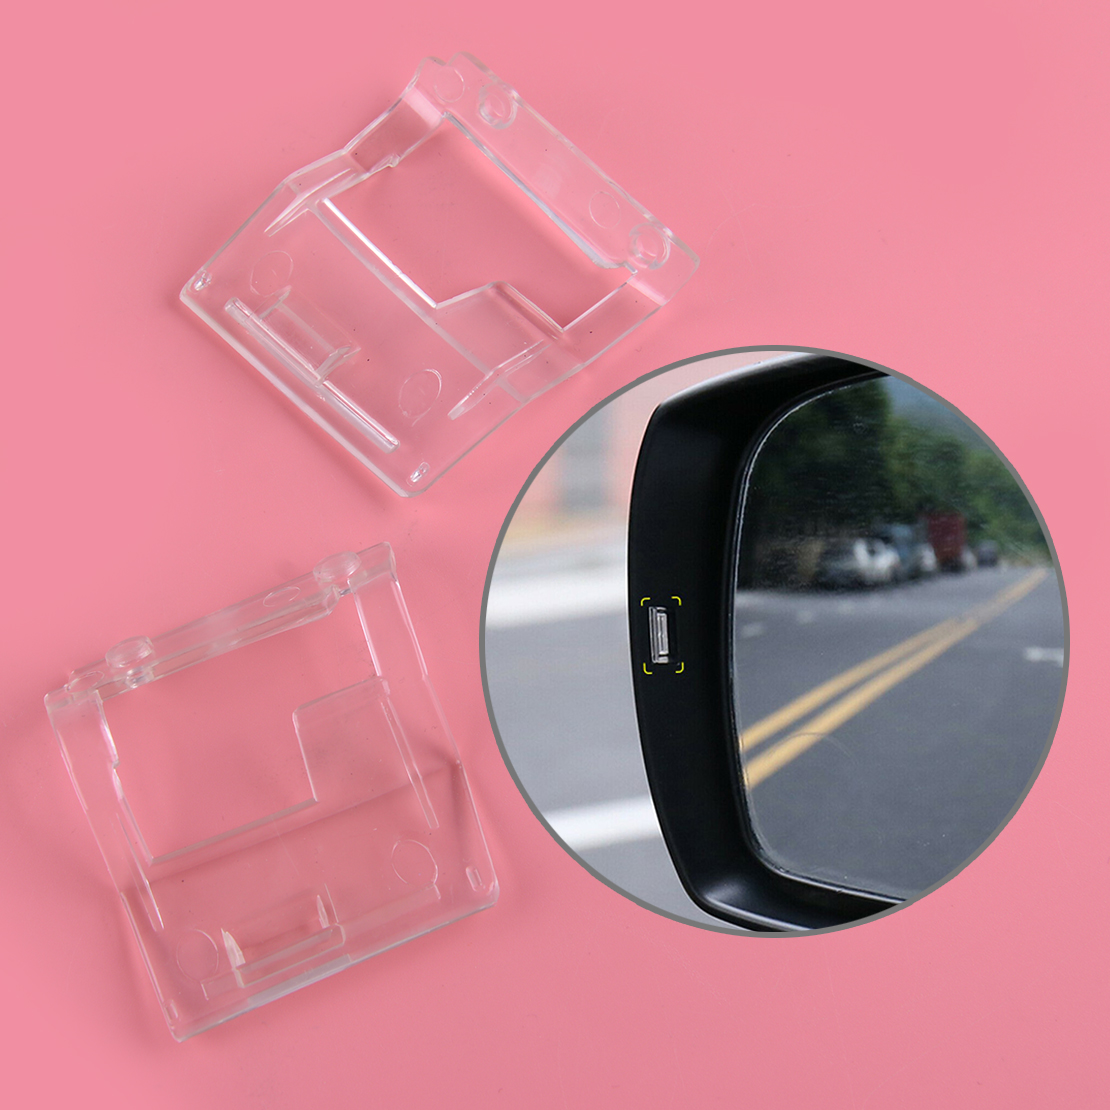 DWCX 2pcs Clear Car Side Mirrors Assistant Turn Signal Light Indicators Lens Fit For Subaru Forester XV 2015 2016 2017 2018 2019